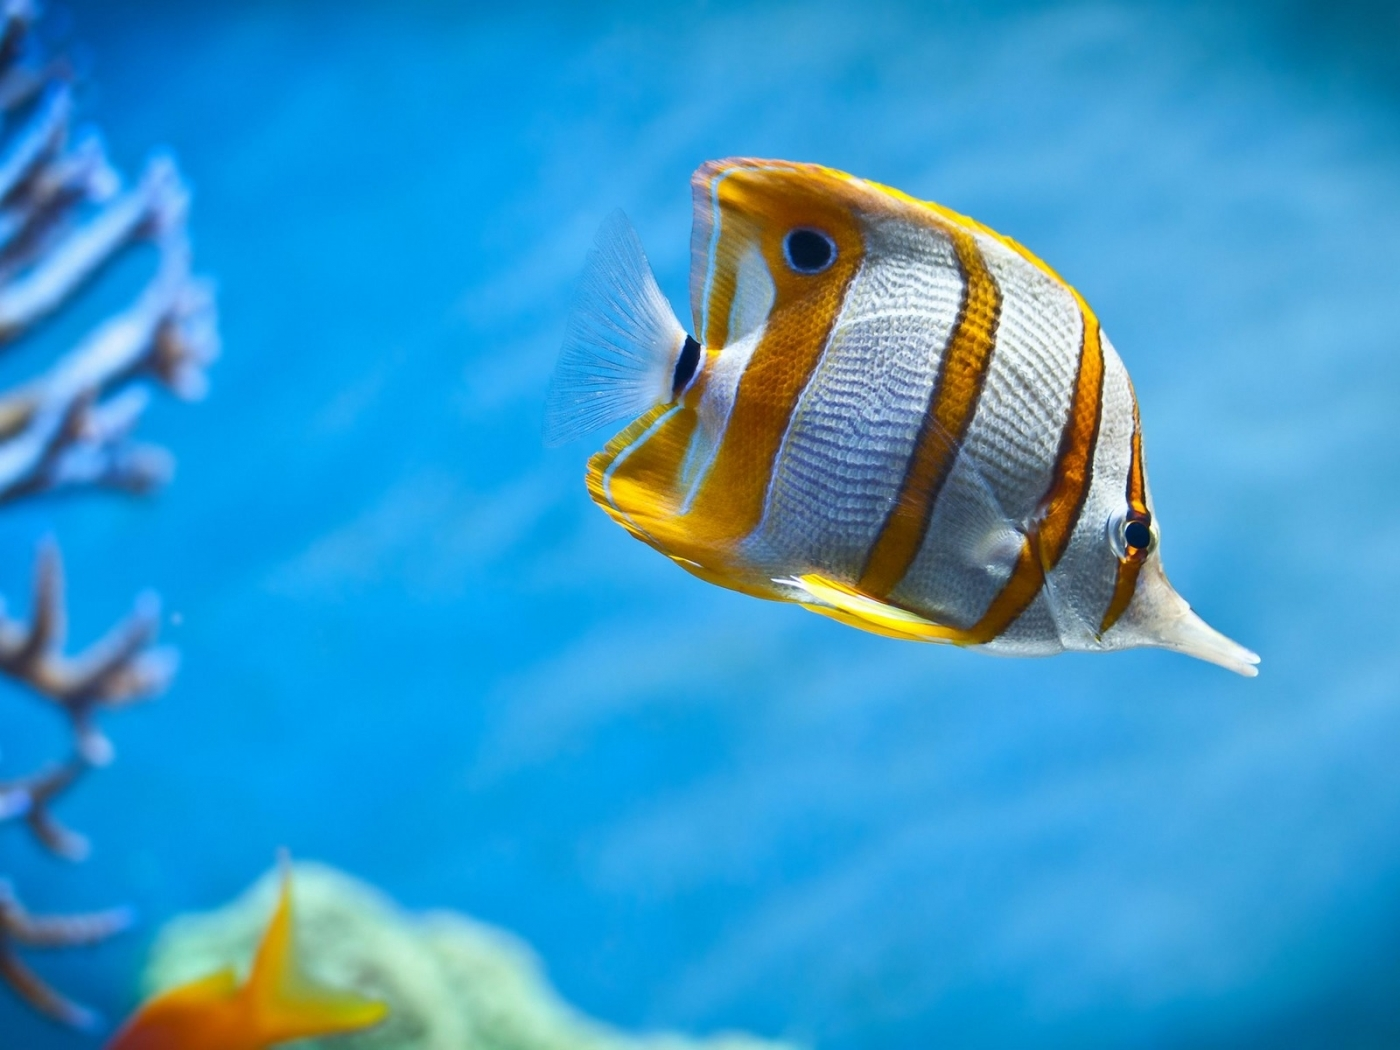 40397 download wallpaper Animals, Fishes screensavers and pictures for free